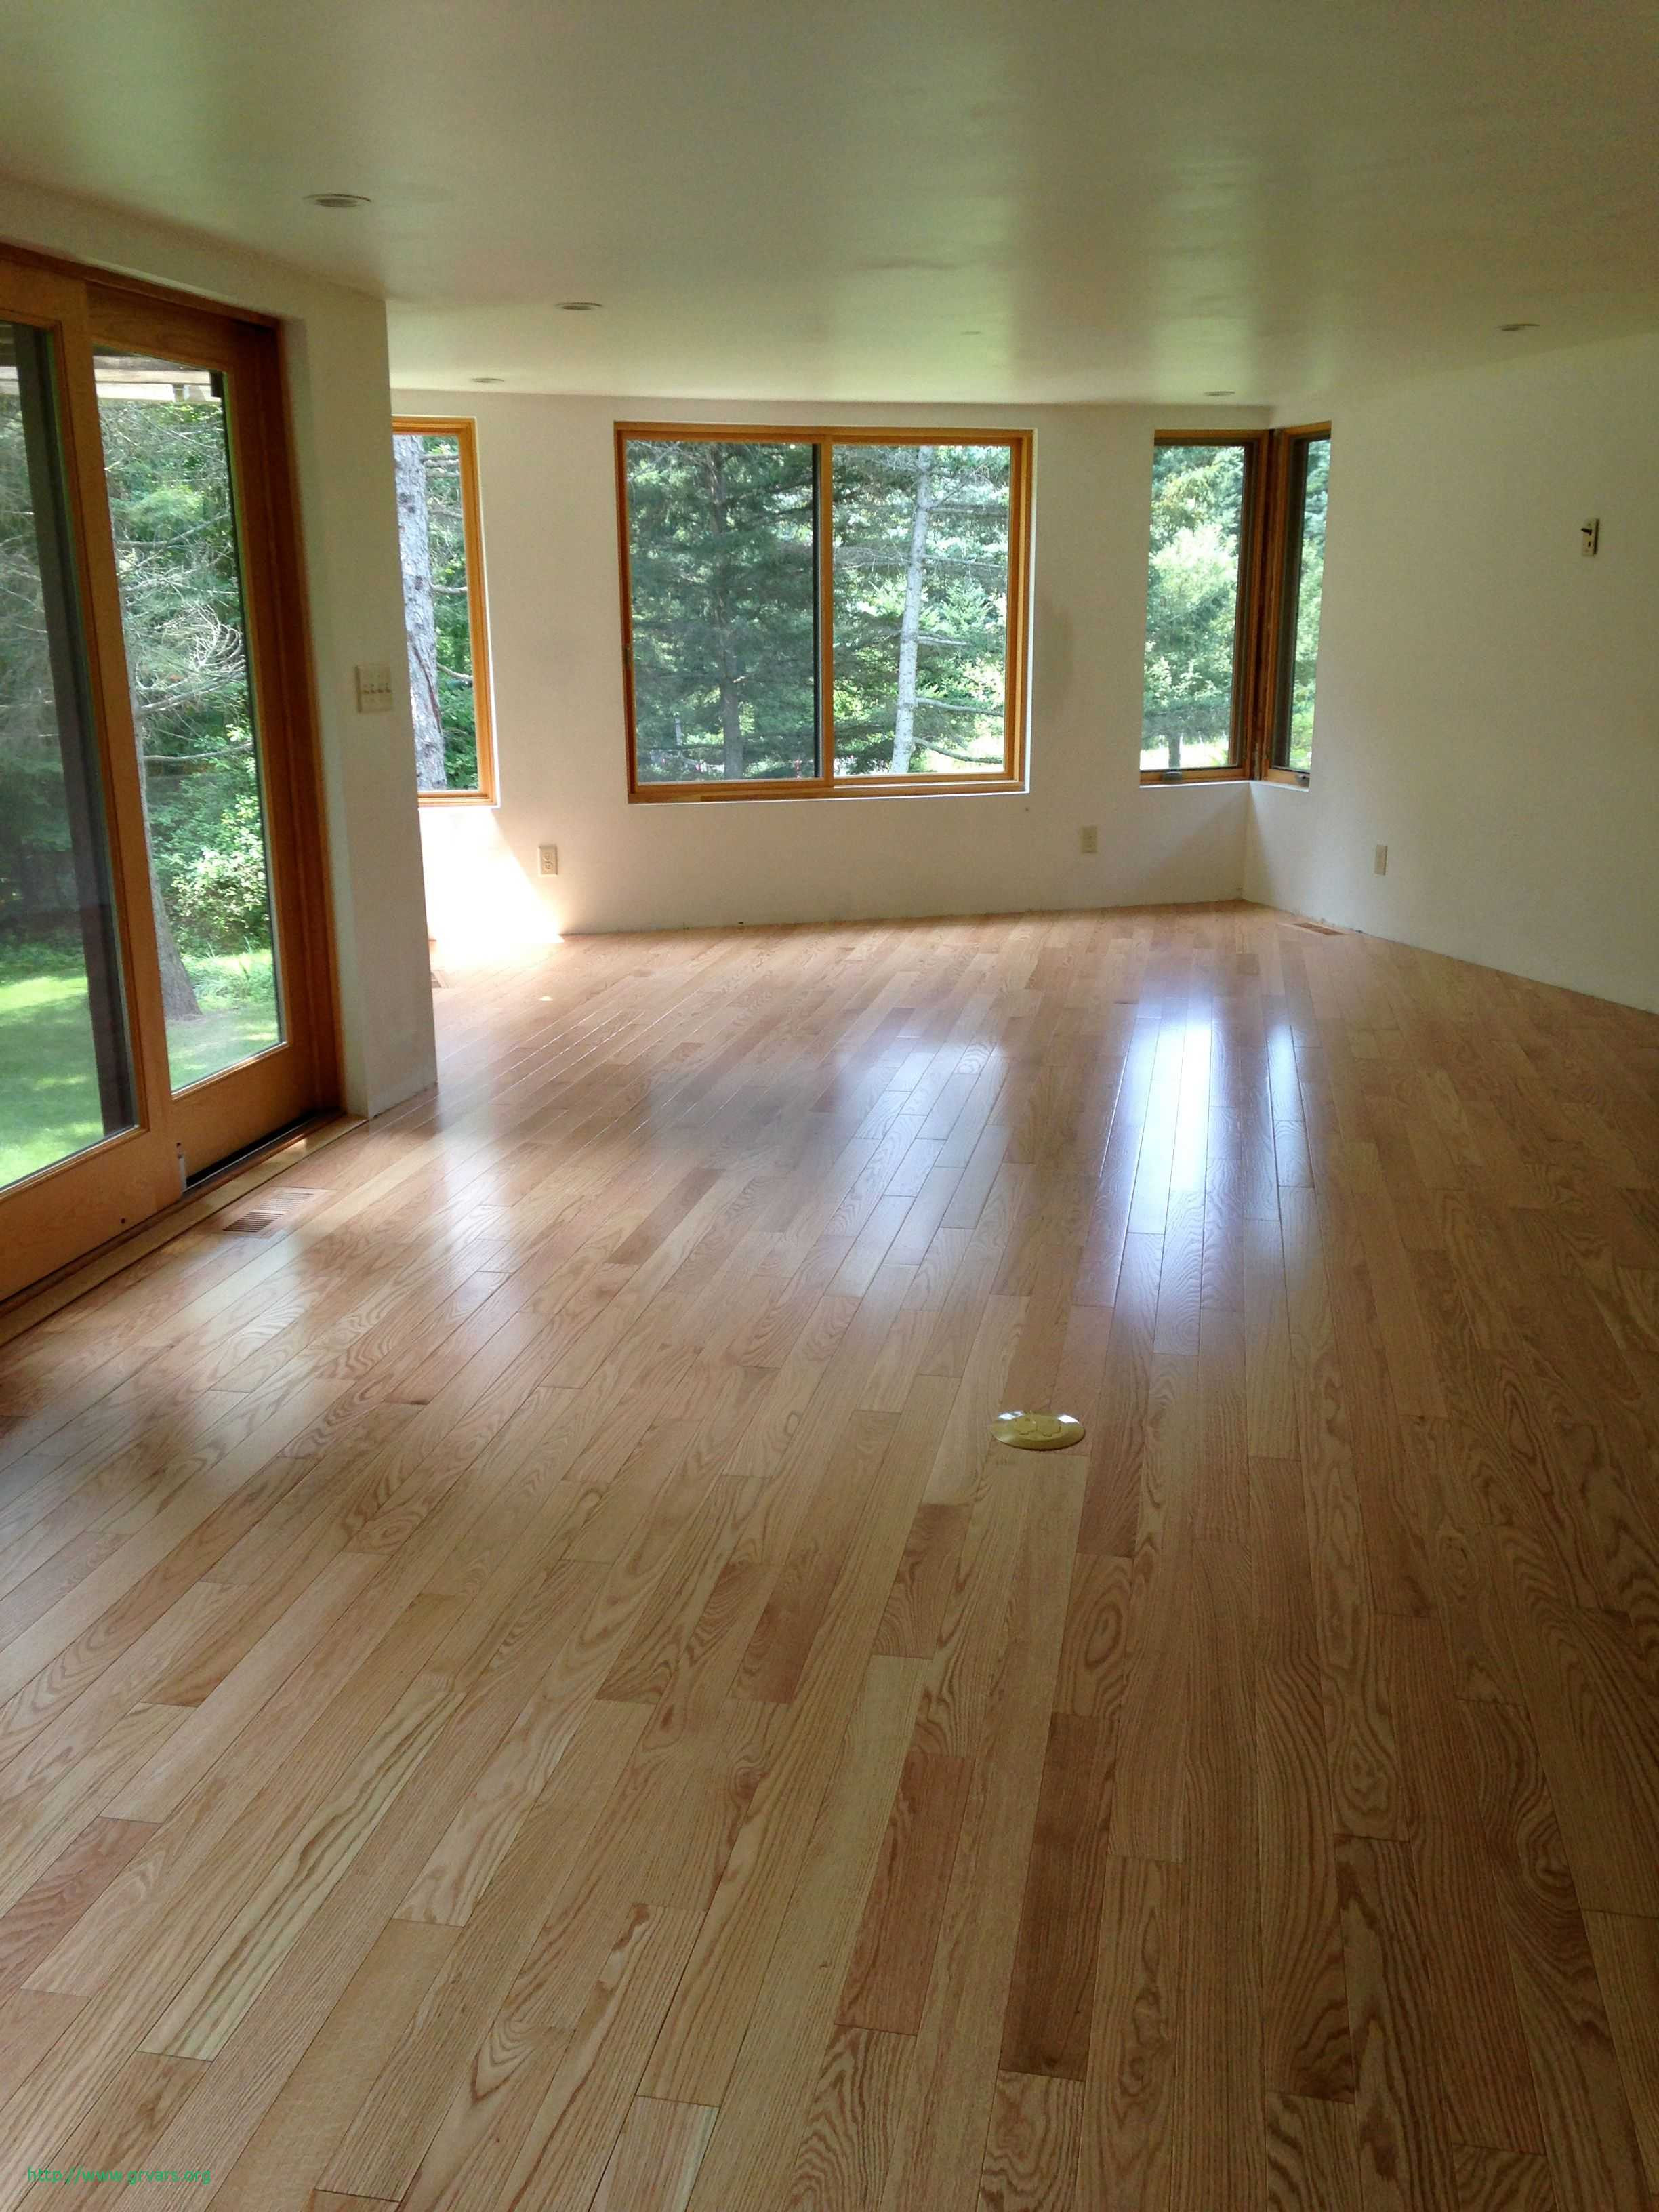 Cost to Refinish Hardwood Floors Chicago Of How Much Does It Cost to Have Floors Refinished Inspirant A M Intended for How Much Does It Cost to Have Floors Refinished Charmant Great Methods to Use for Refinishing